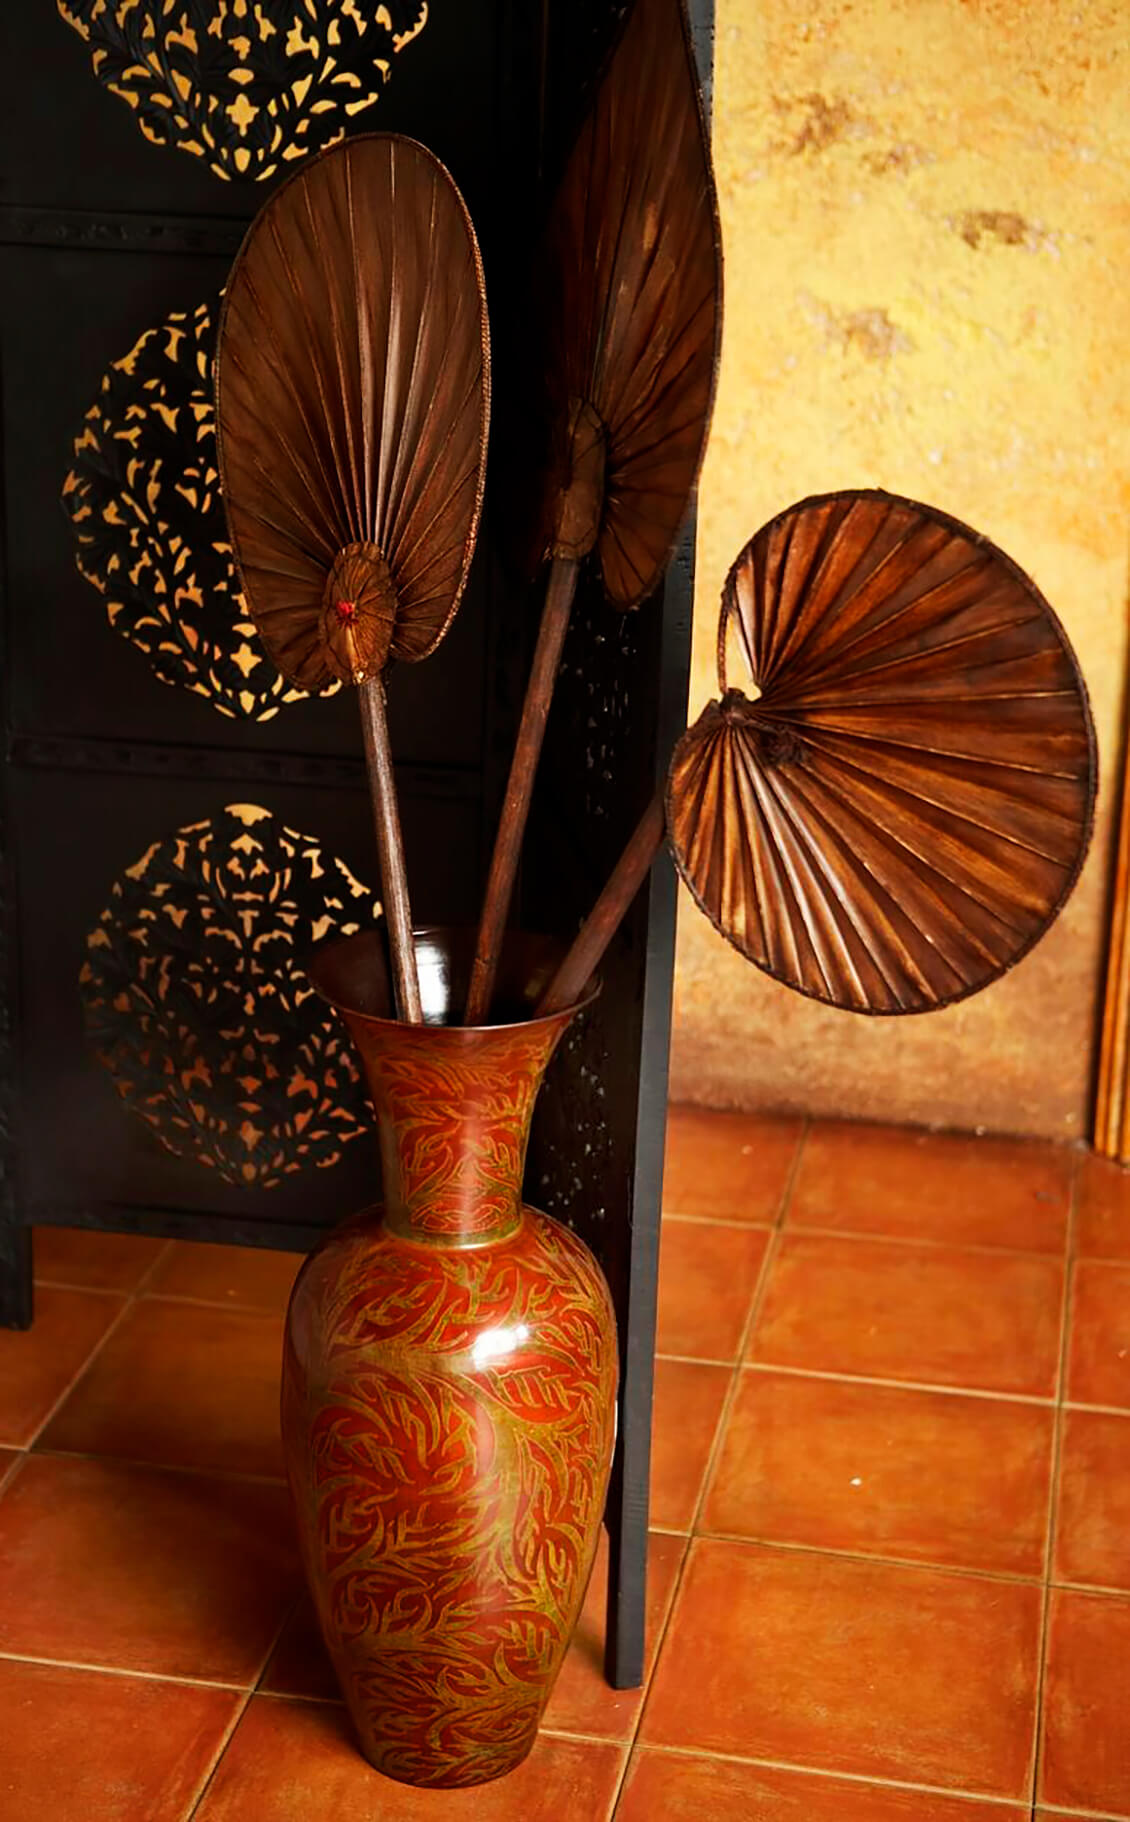 vase and fans interior design photography